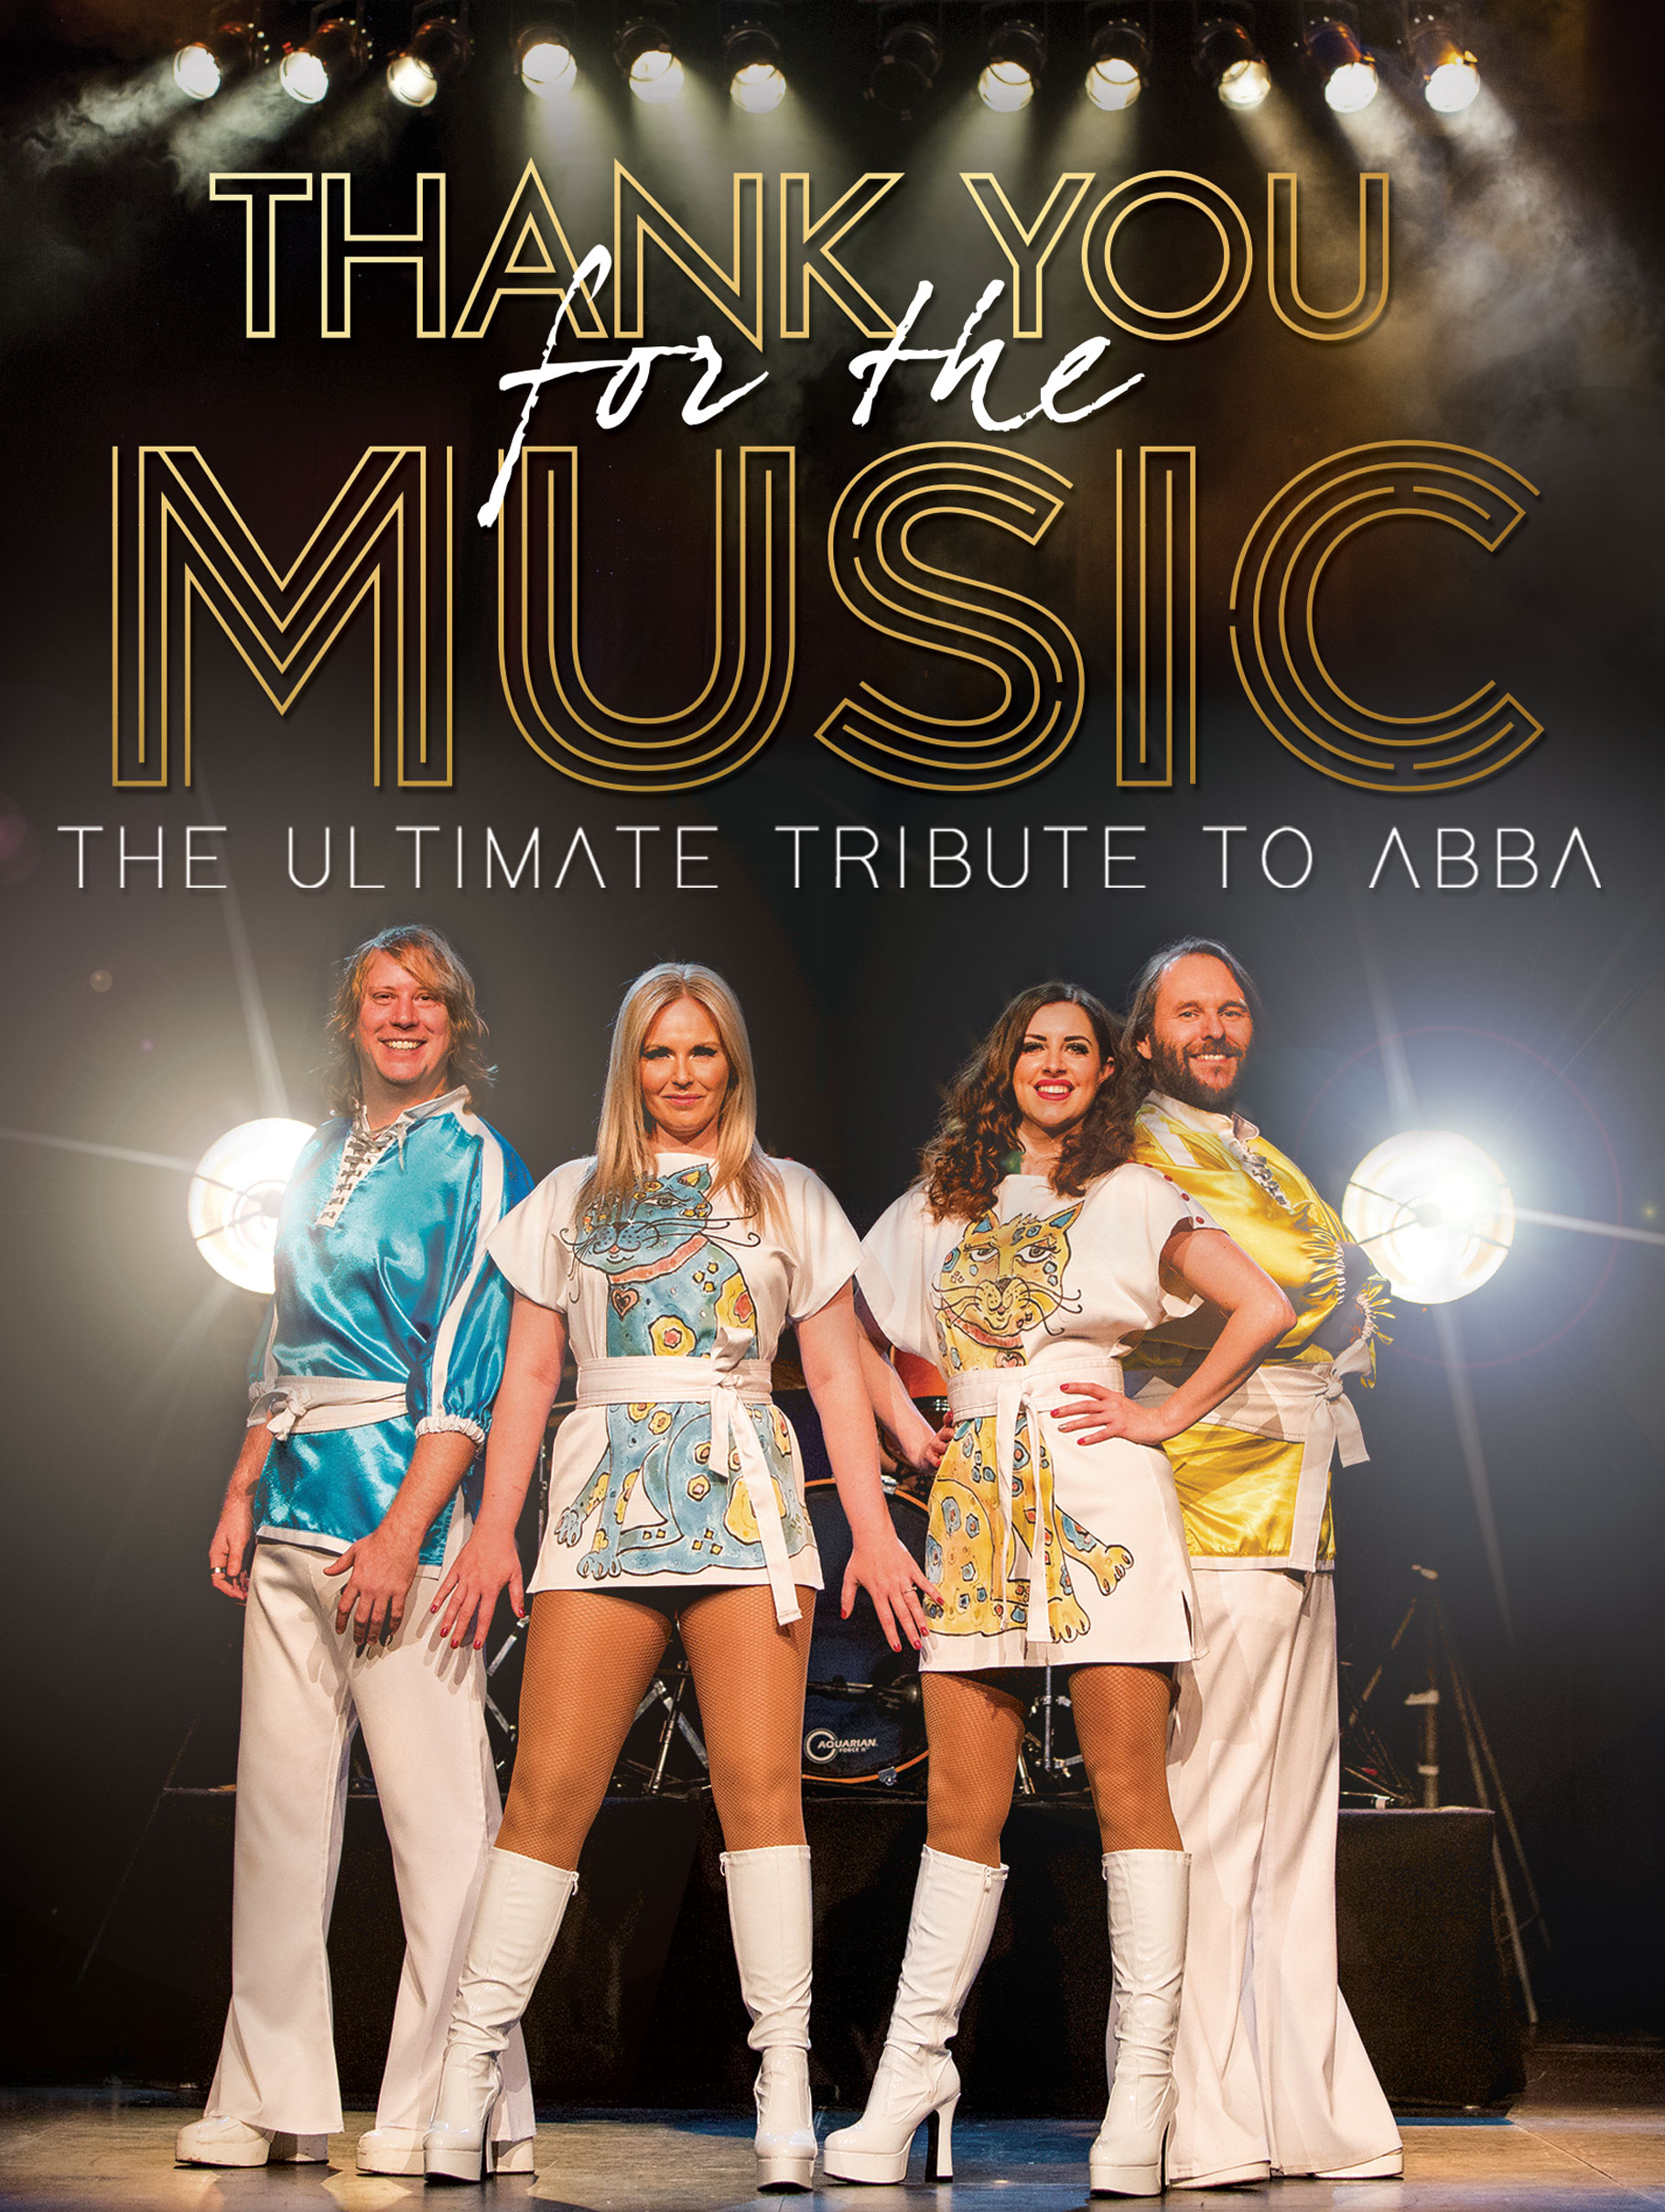 Thank You for the Music The Ultimate Tribute to ABBA